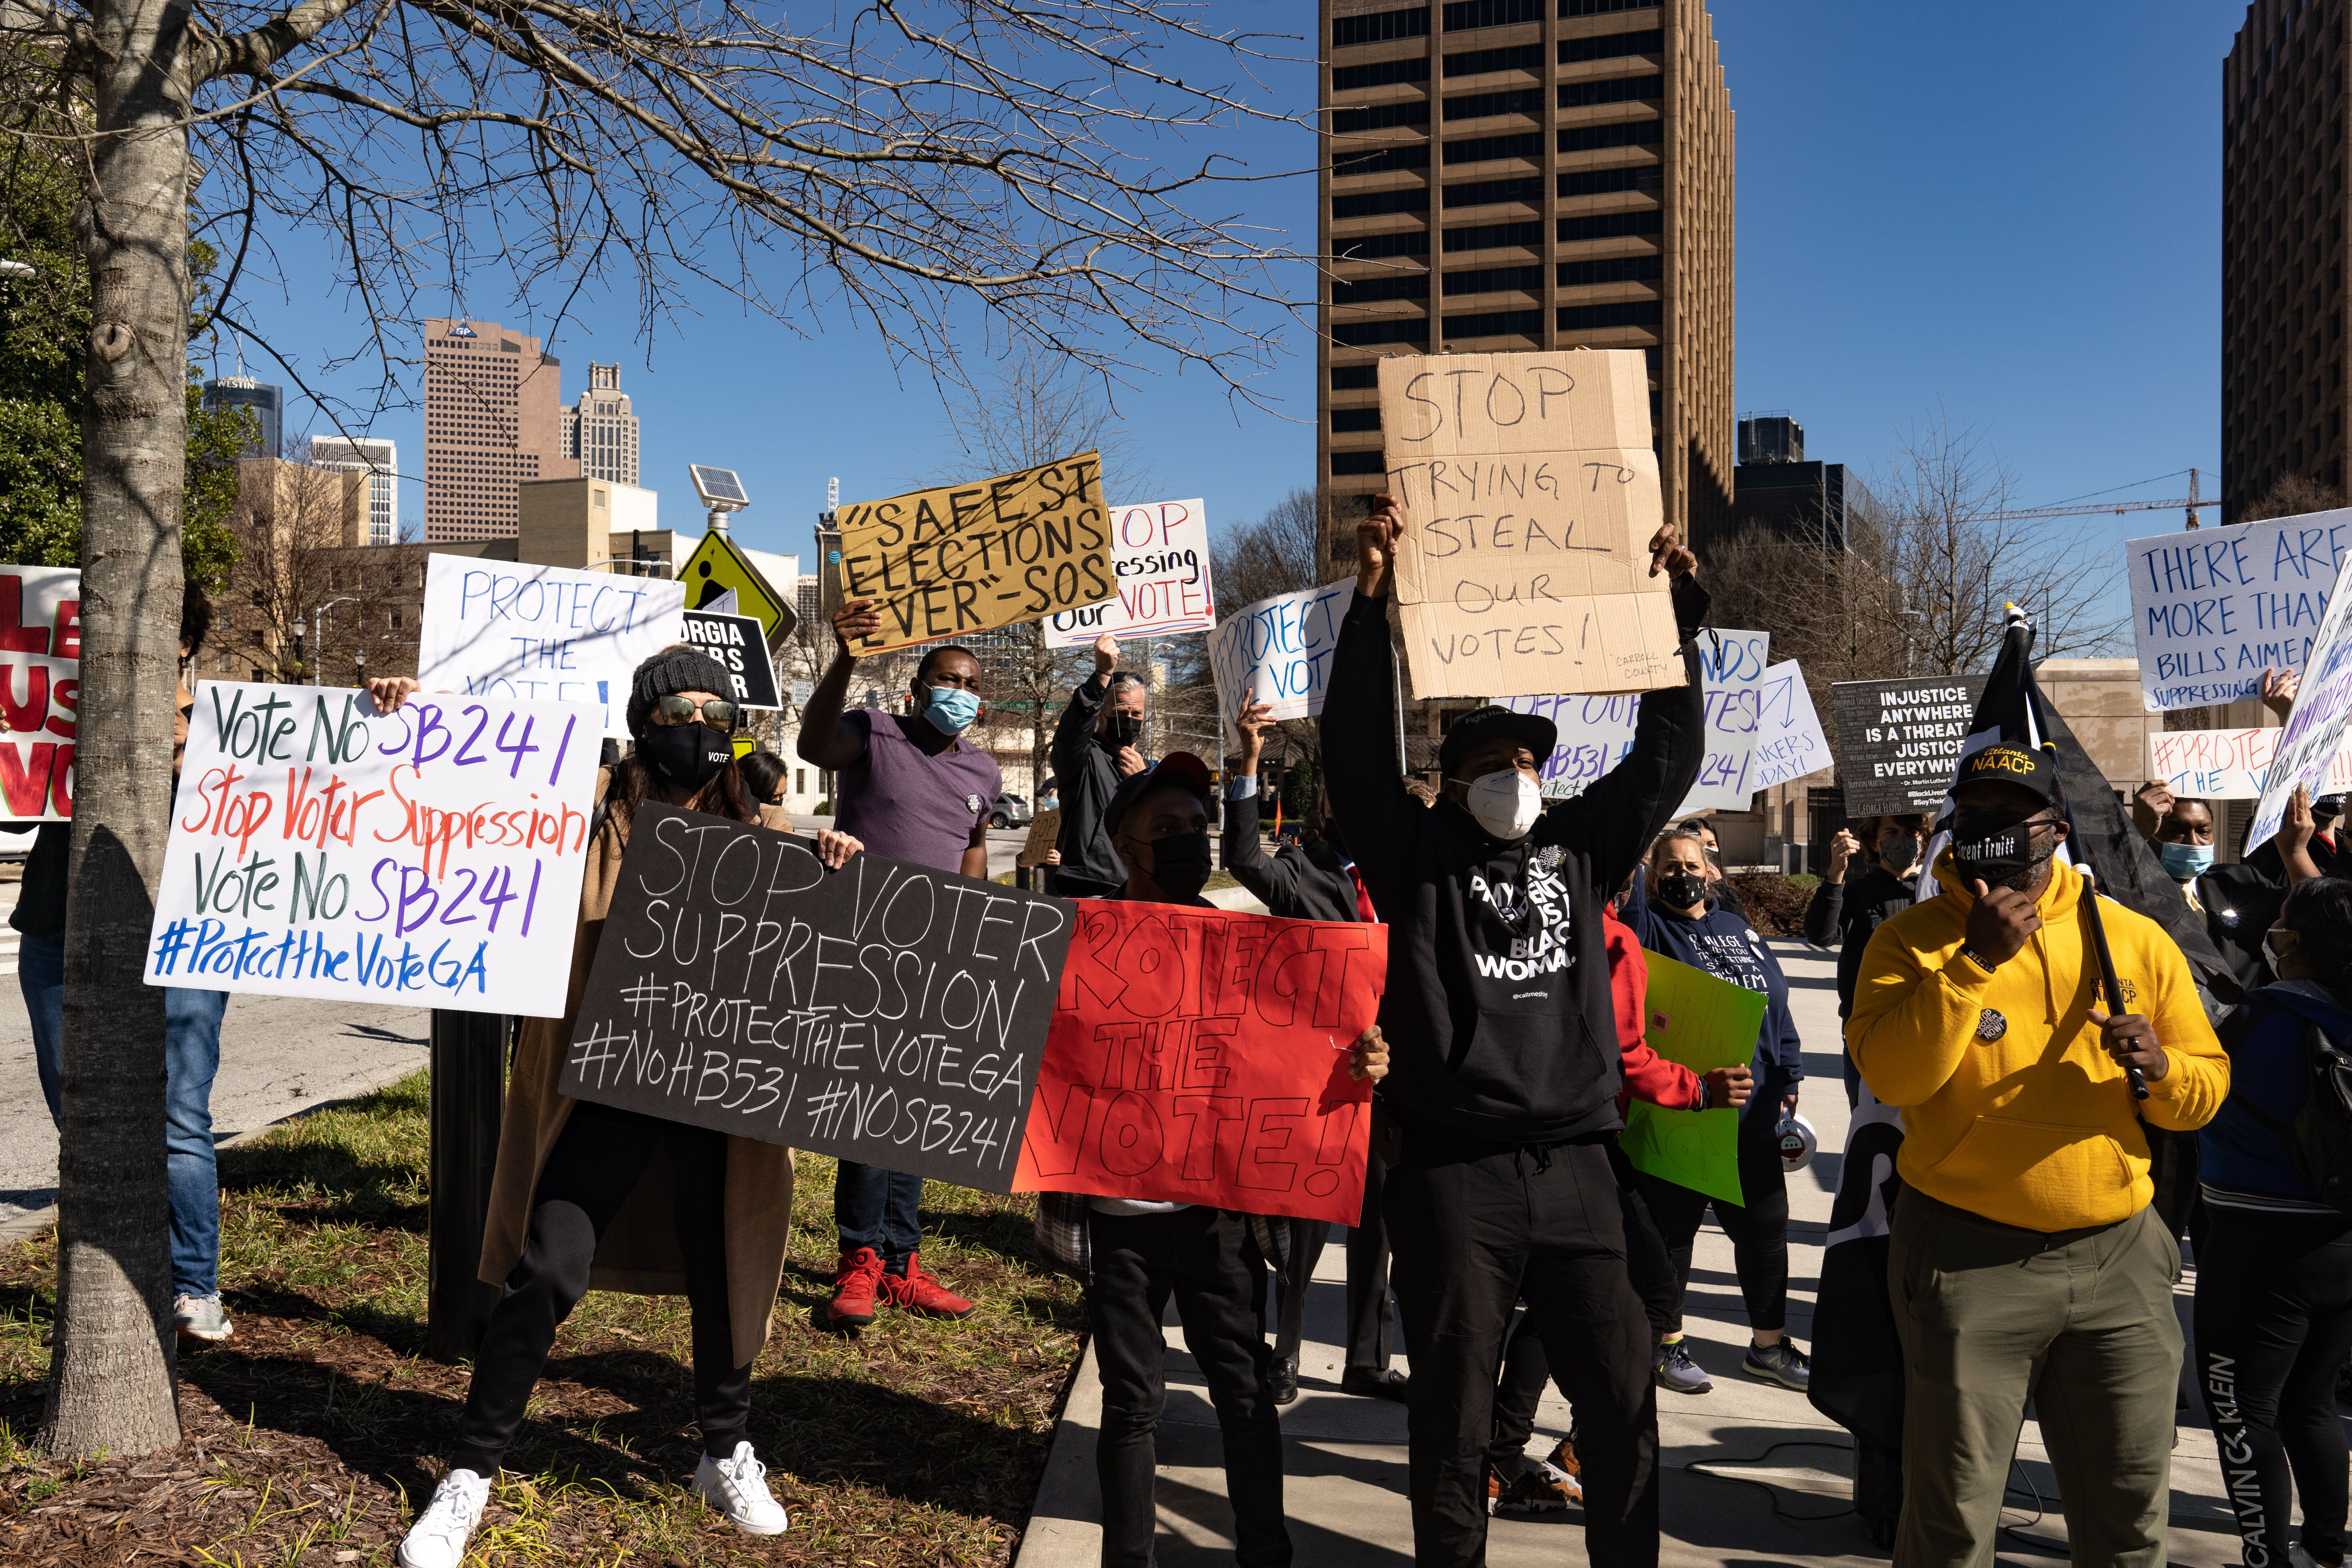 Protesters in Atlanta demonstrated against legislation that added new restrictions on voting to Georgia elections. In March,